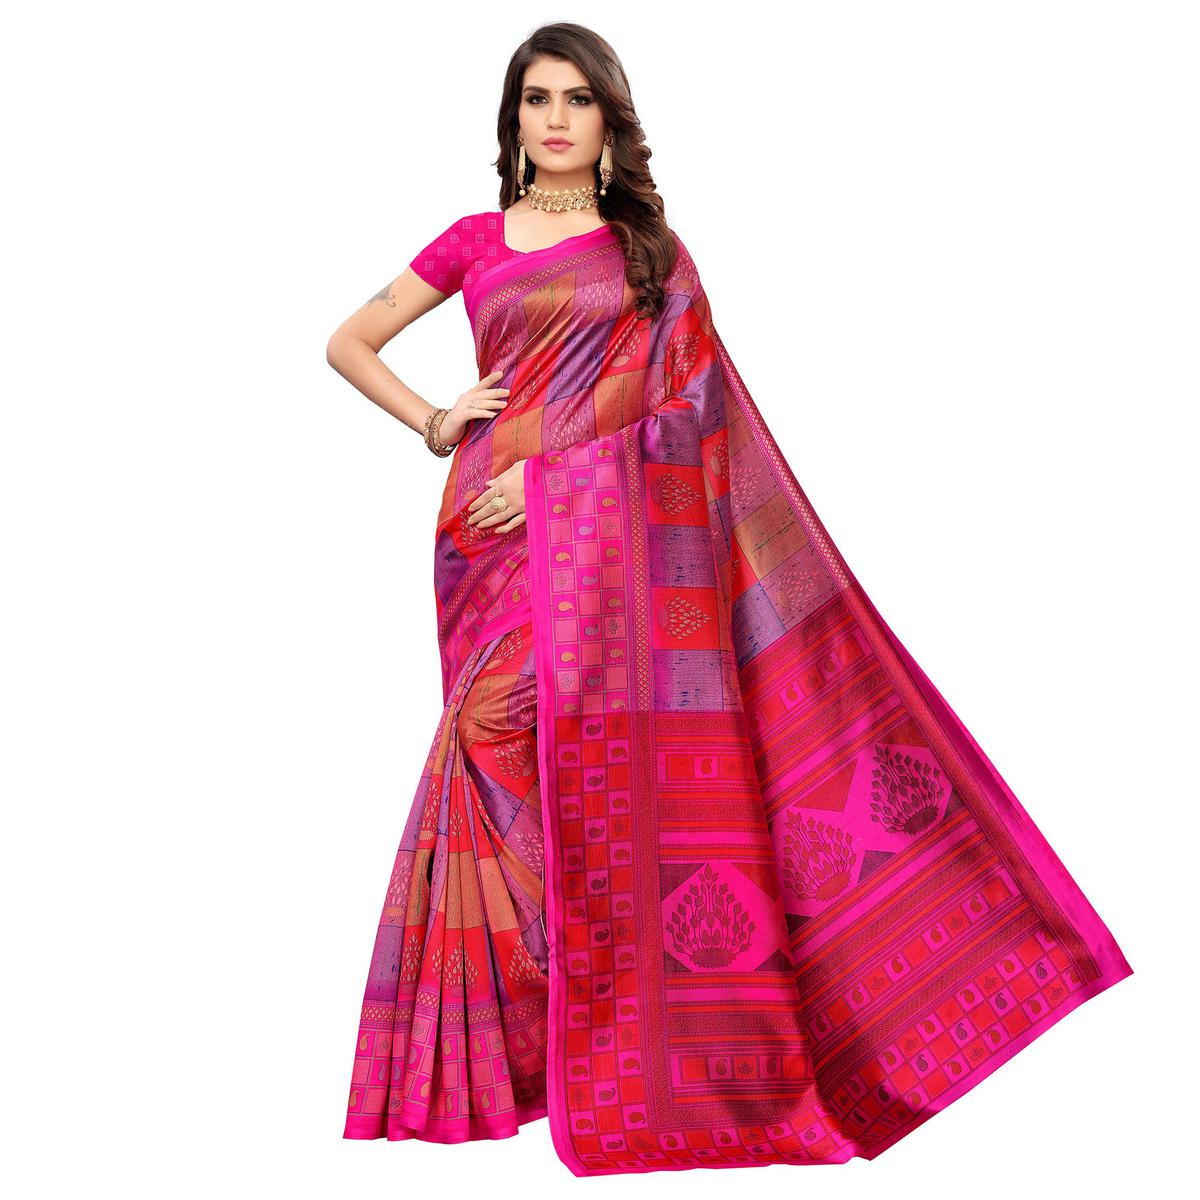 Groovy Pink Colored Casual Wear Printed Art Silk Saree